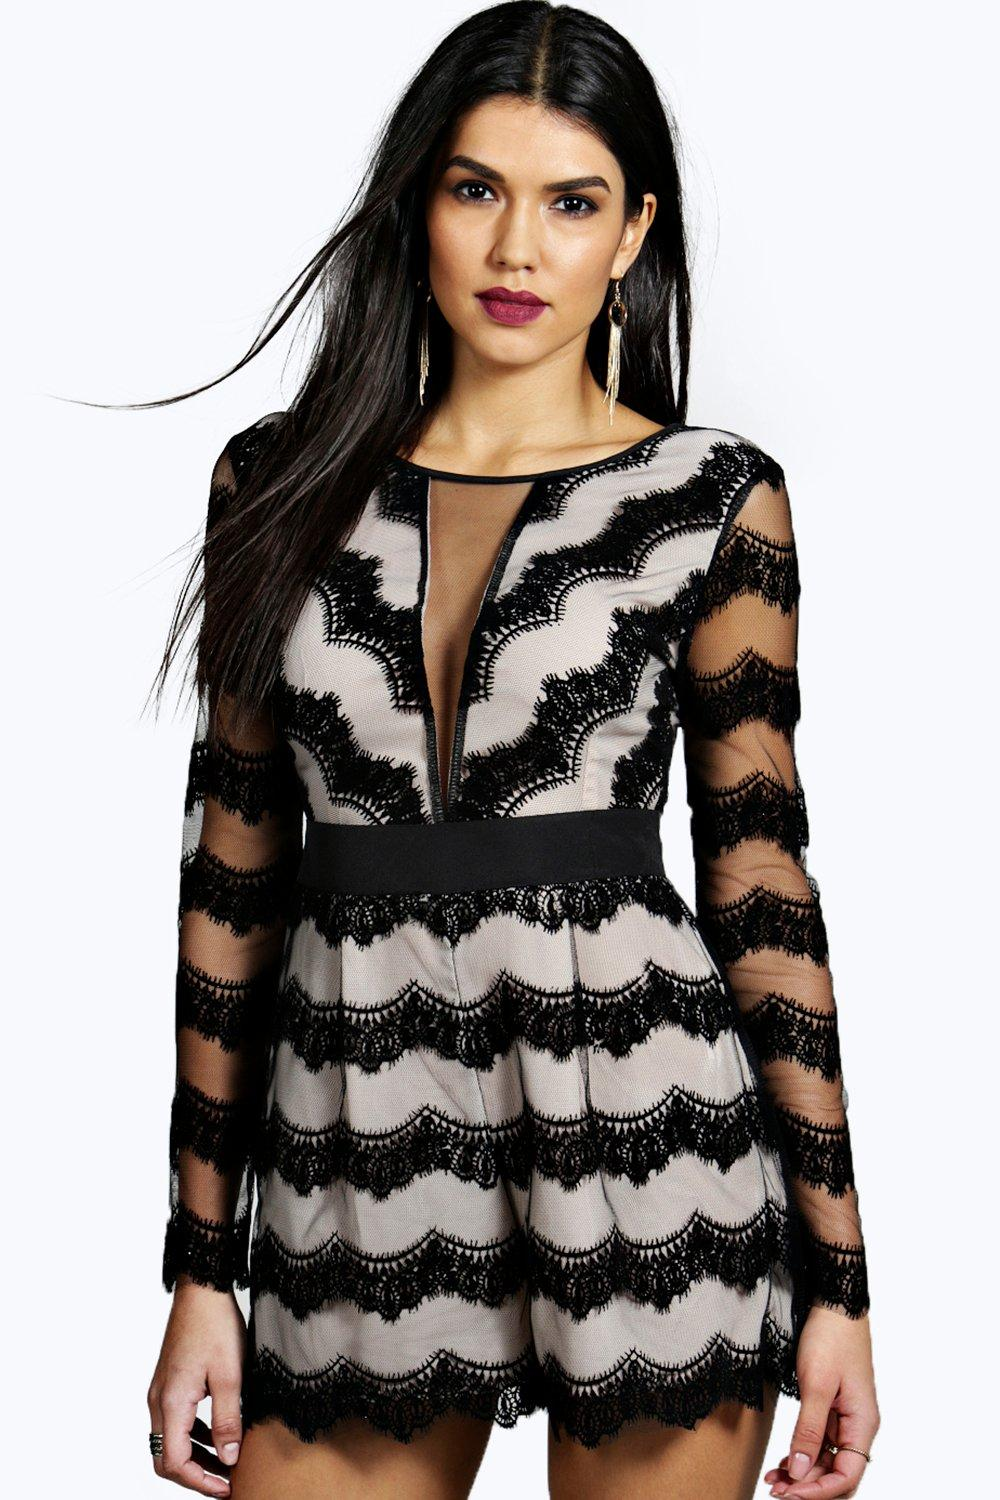 Cate Eyelash Lace Barely There Playsuit